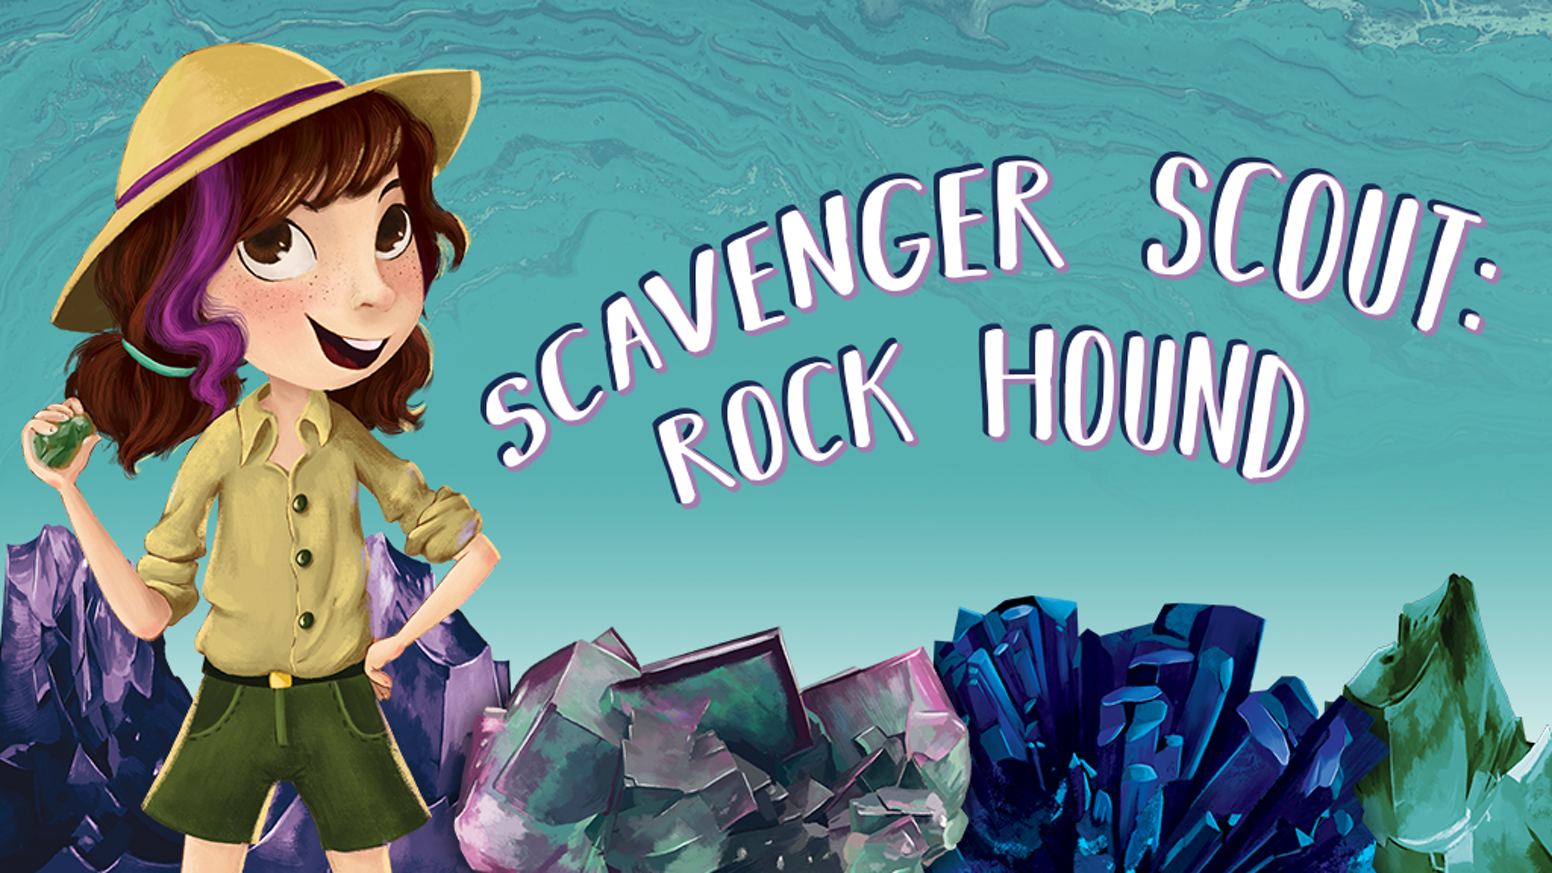 A STEM-inspired story about a resourceful girl rock hound who tells fantastic tales about how she hunted each of her real-life rocks.